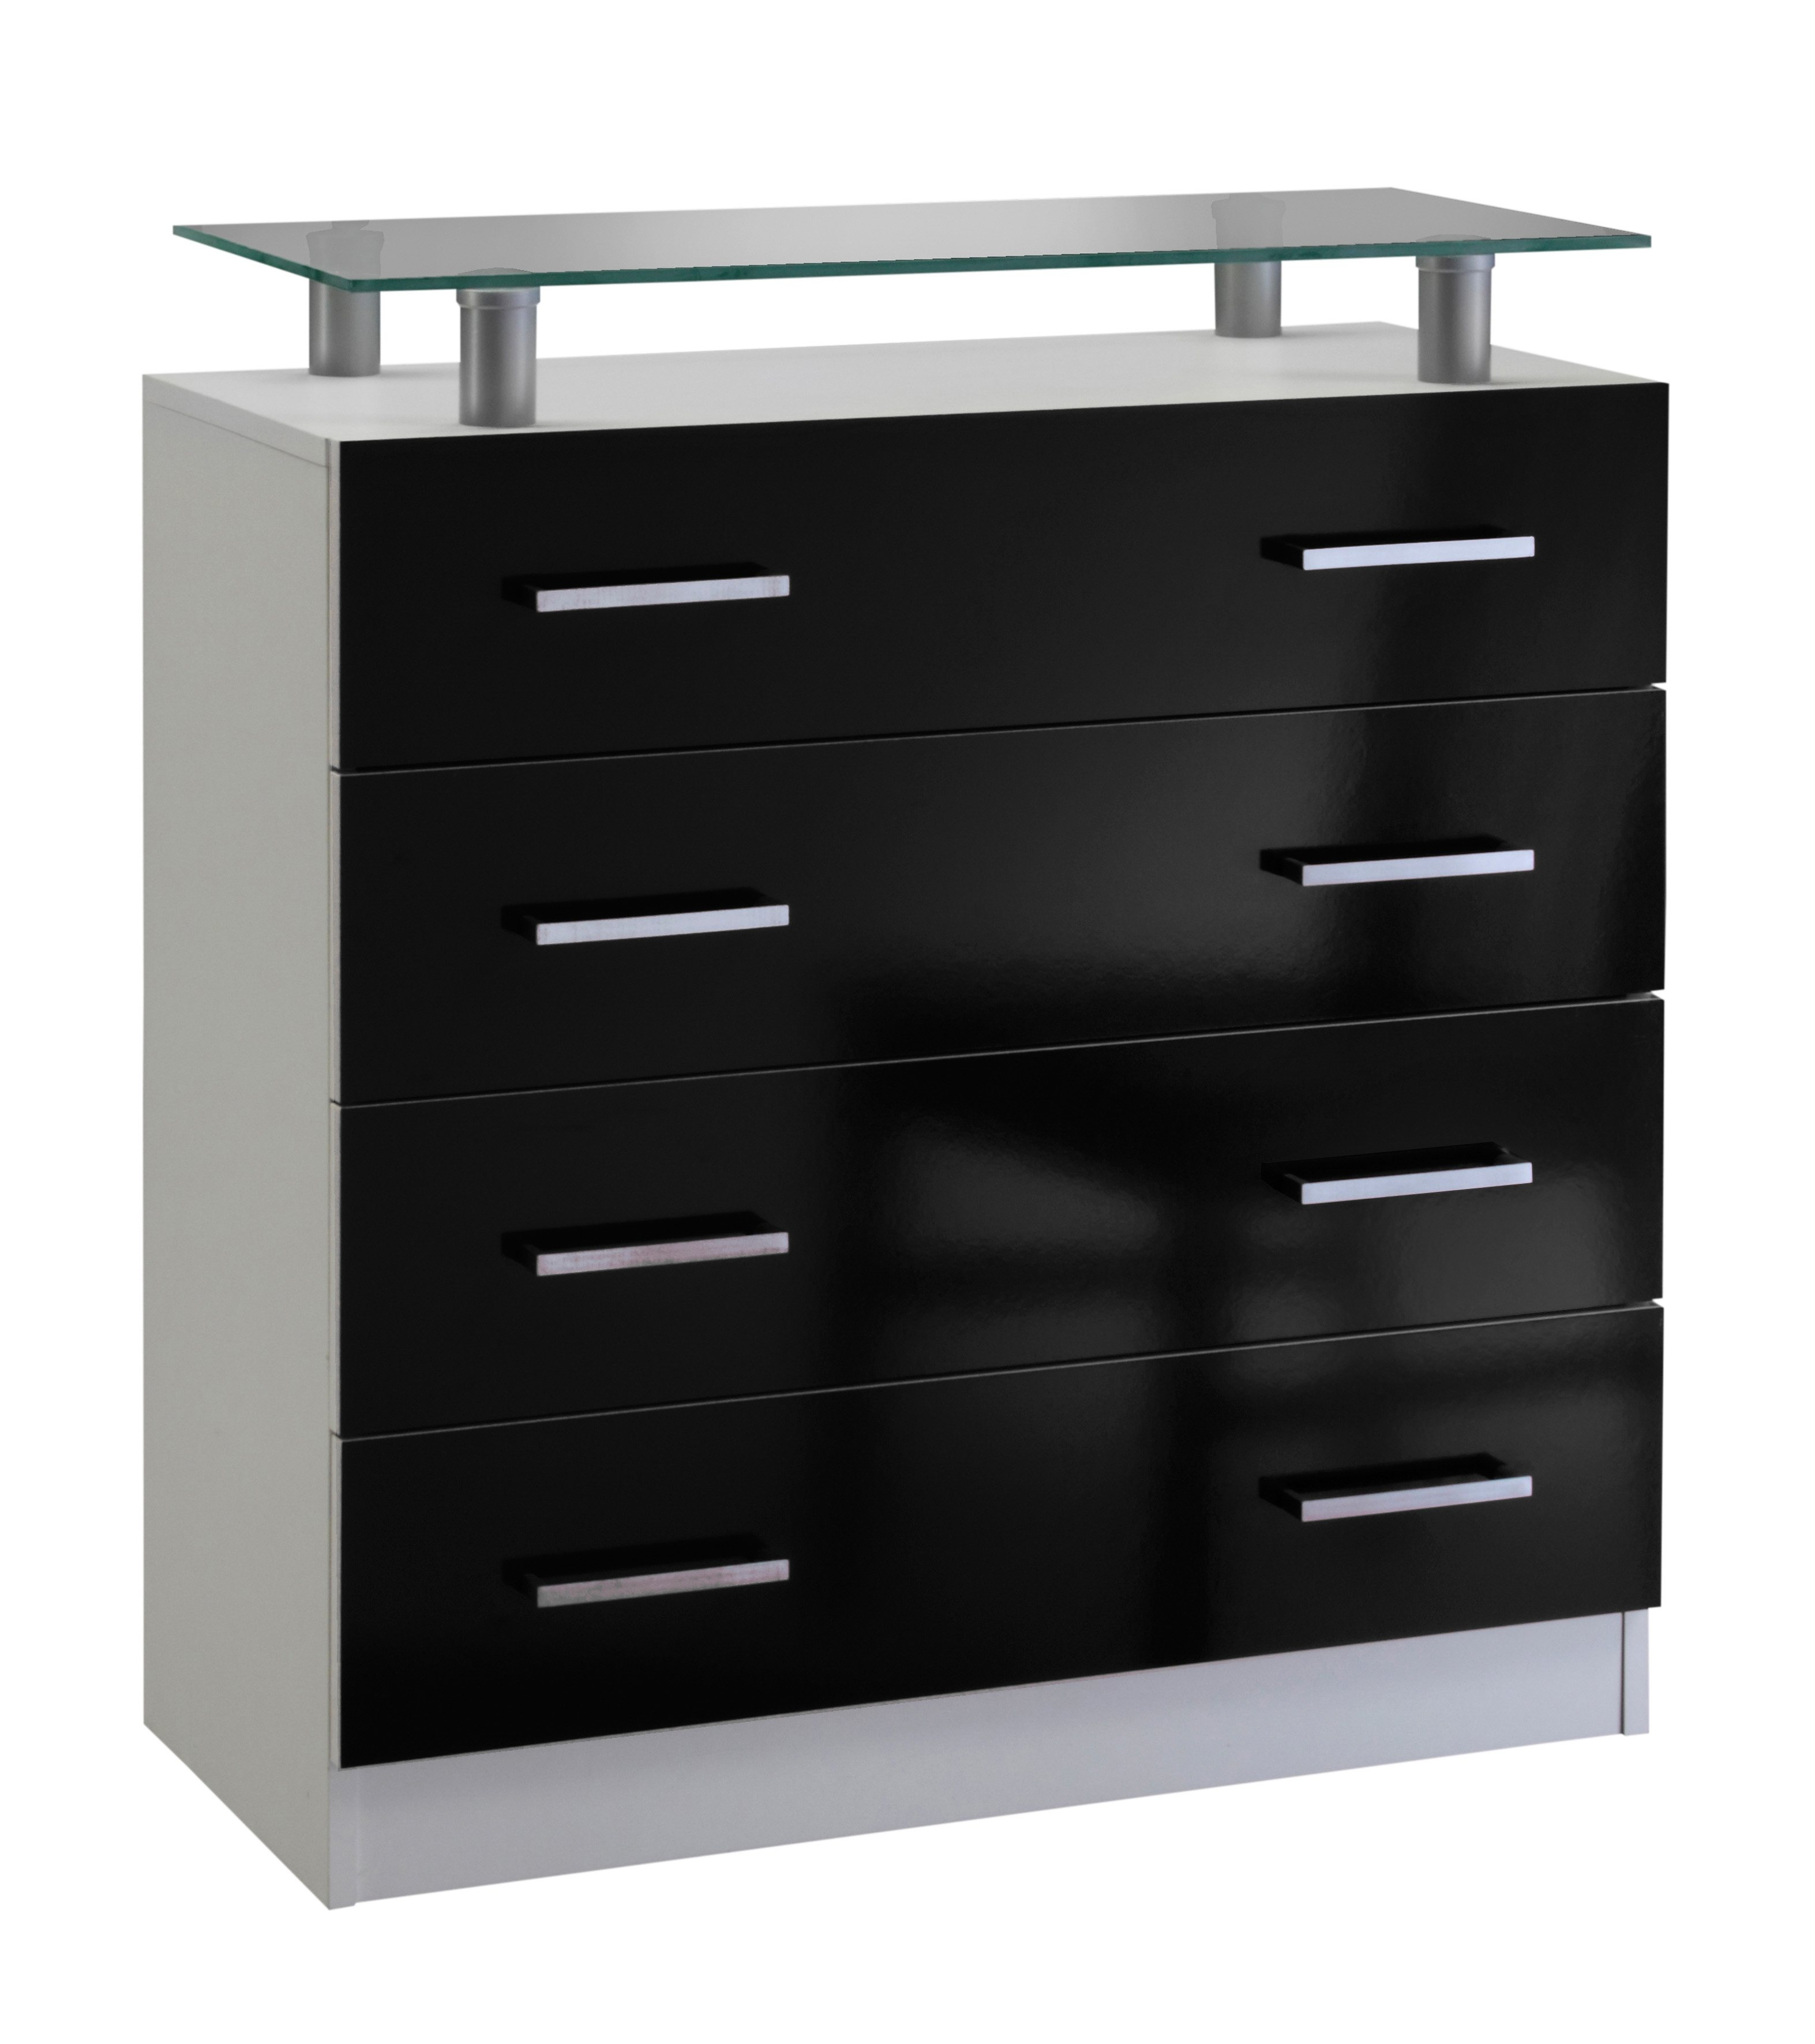 kommode vaasa breite 76 cm mit glasablage schwarz. Black Bedroom Furniture Sets. Home Design Ideas